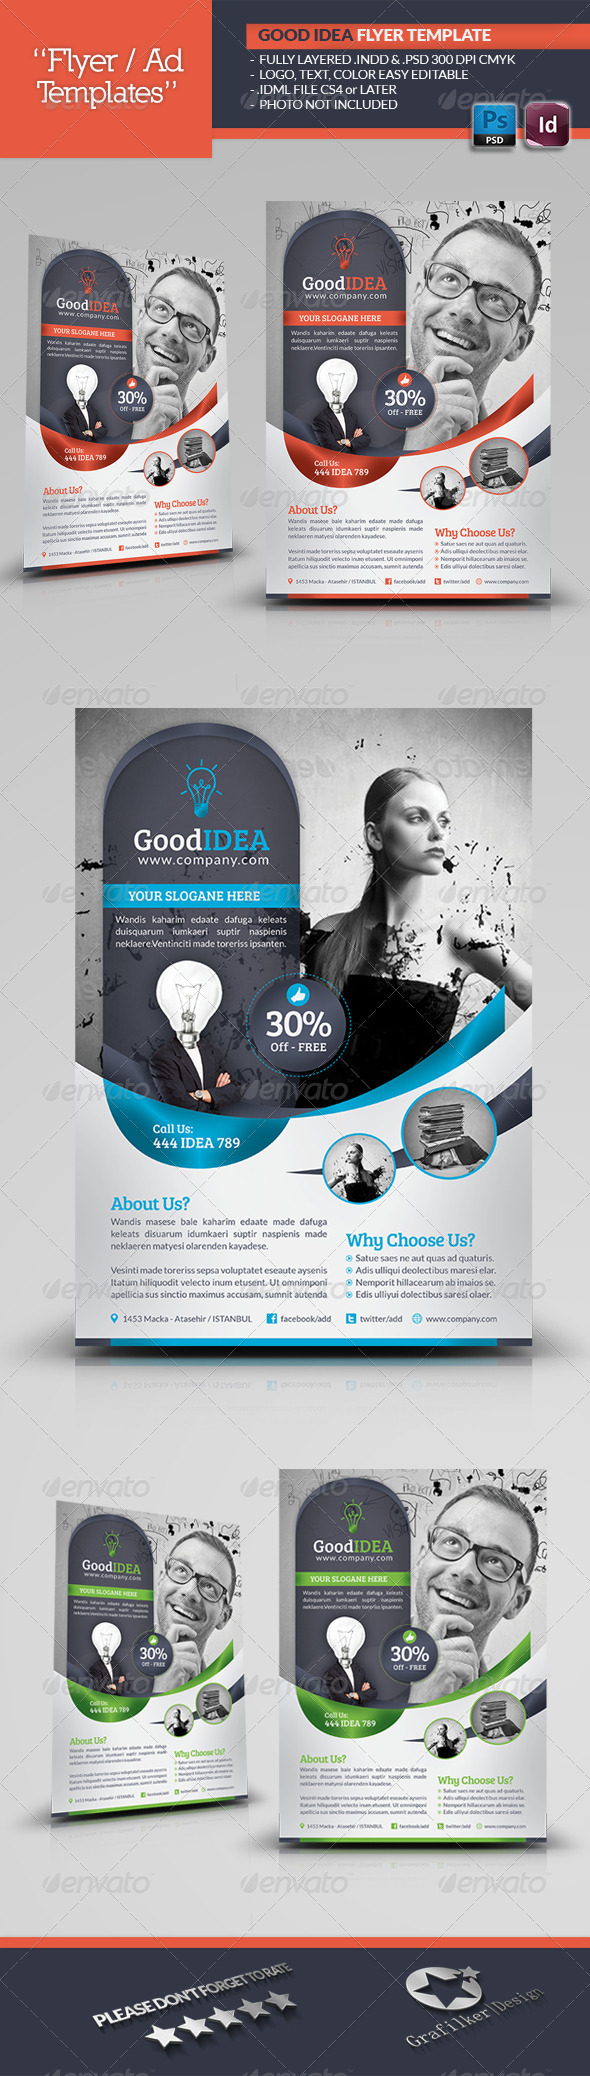 Good Idea Flyer Template - Corporate Flyers